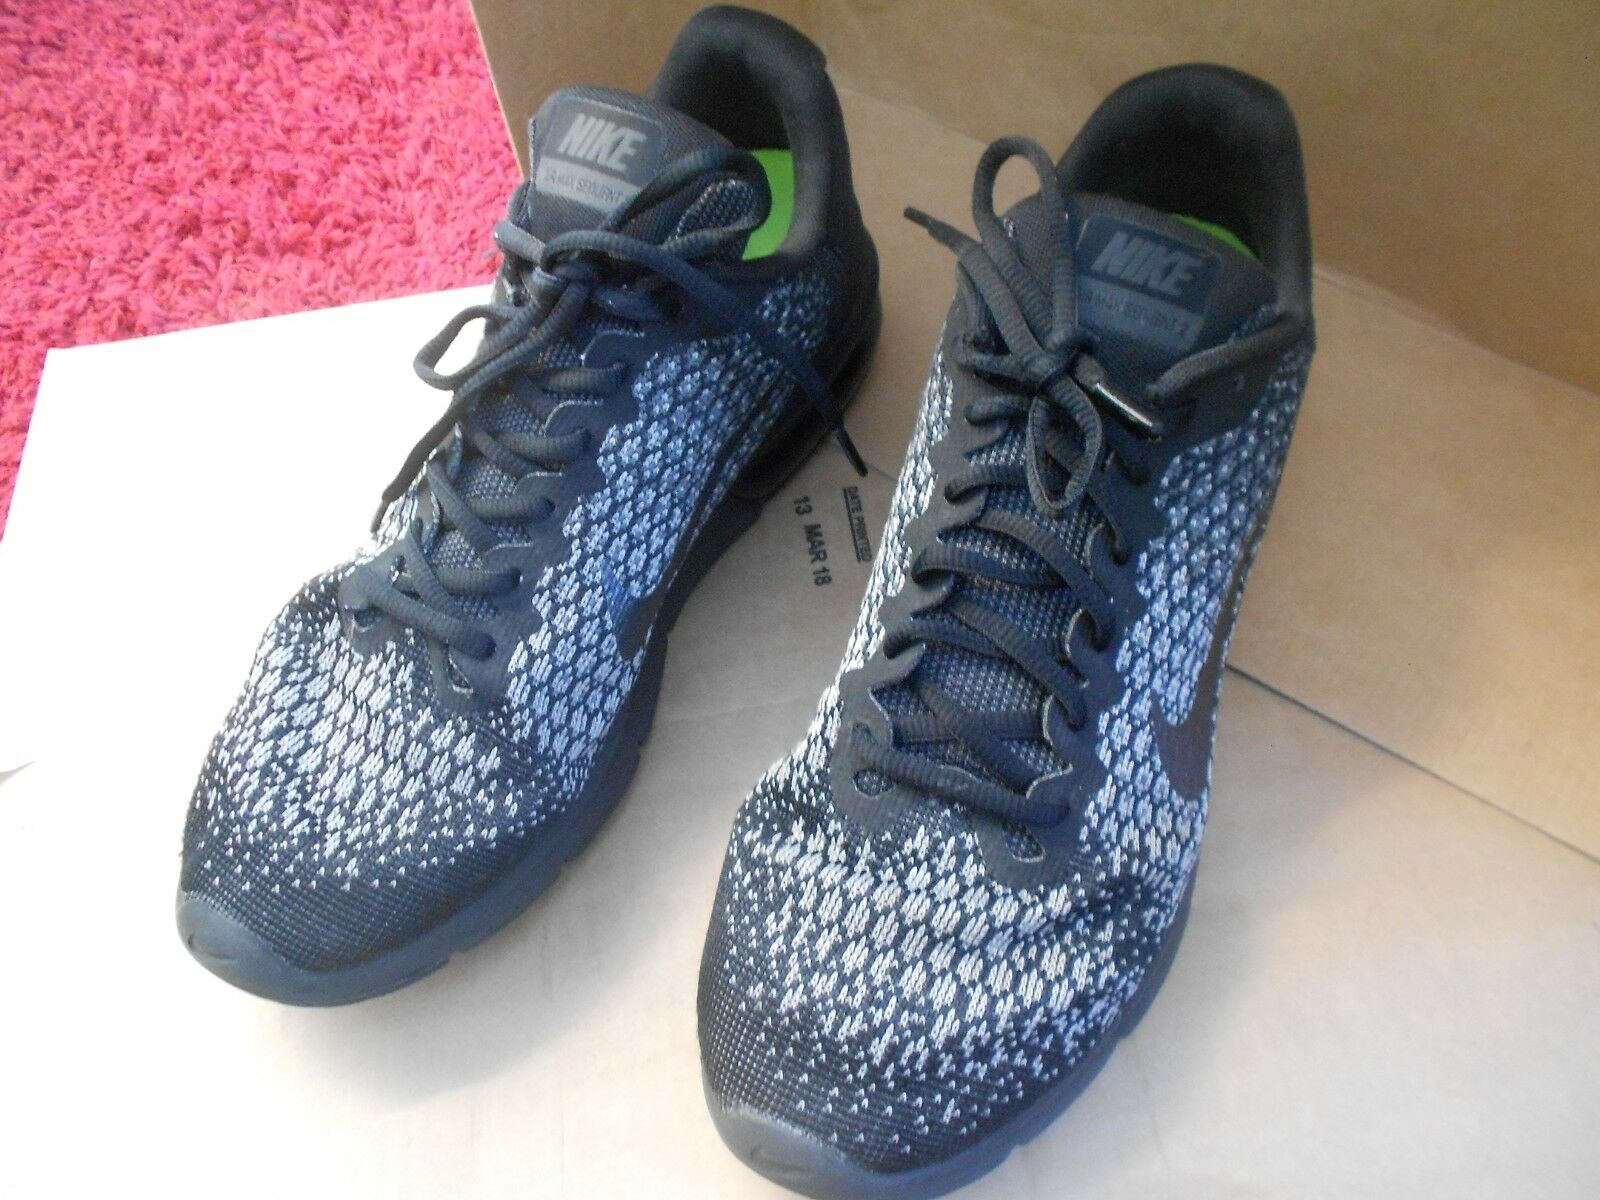 NIKE AIR MAX SEQUENT 2  TRAINERS UK SIZE 9.5 - IN A GOODISH CONDITION